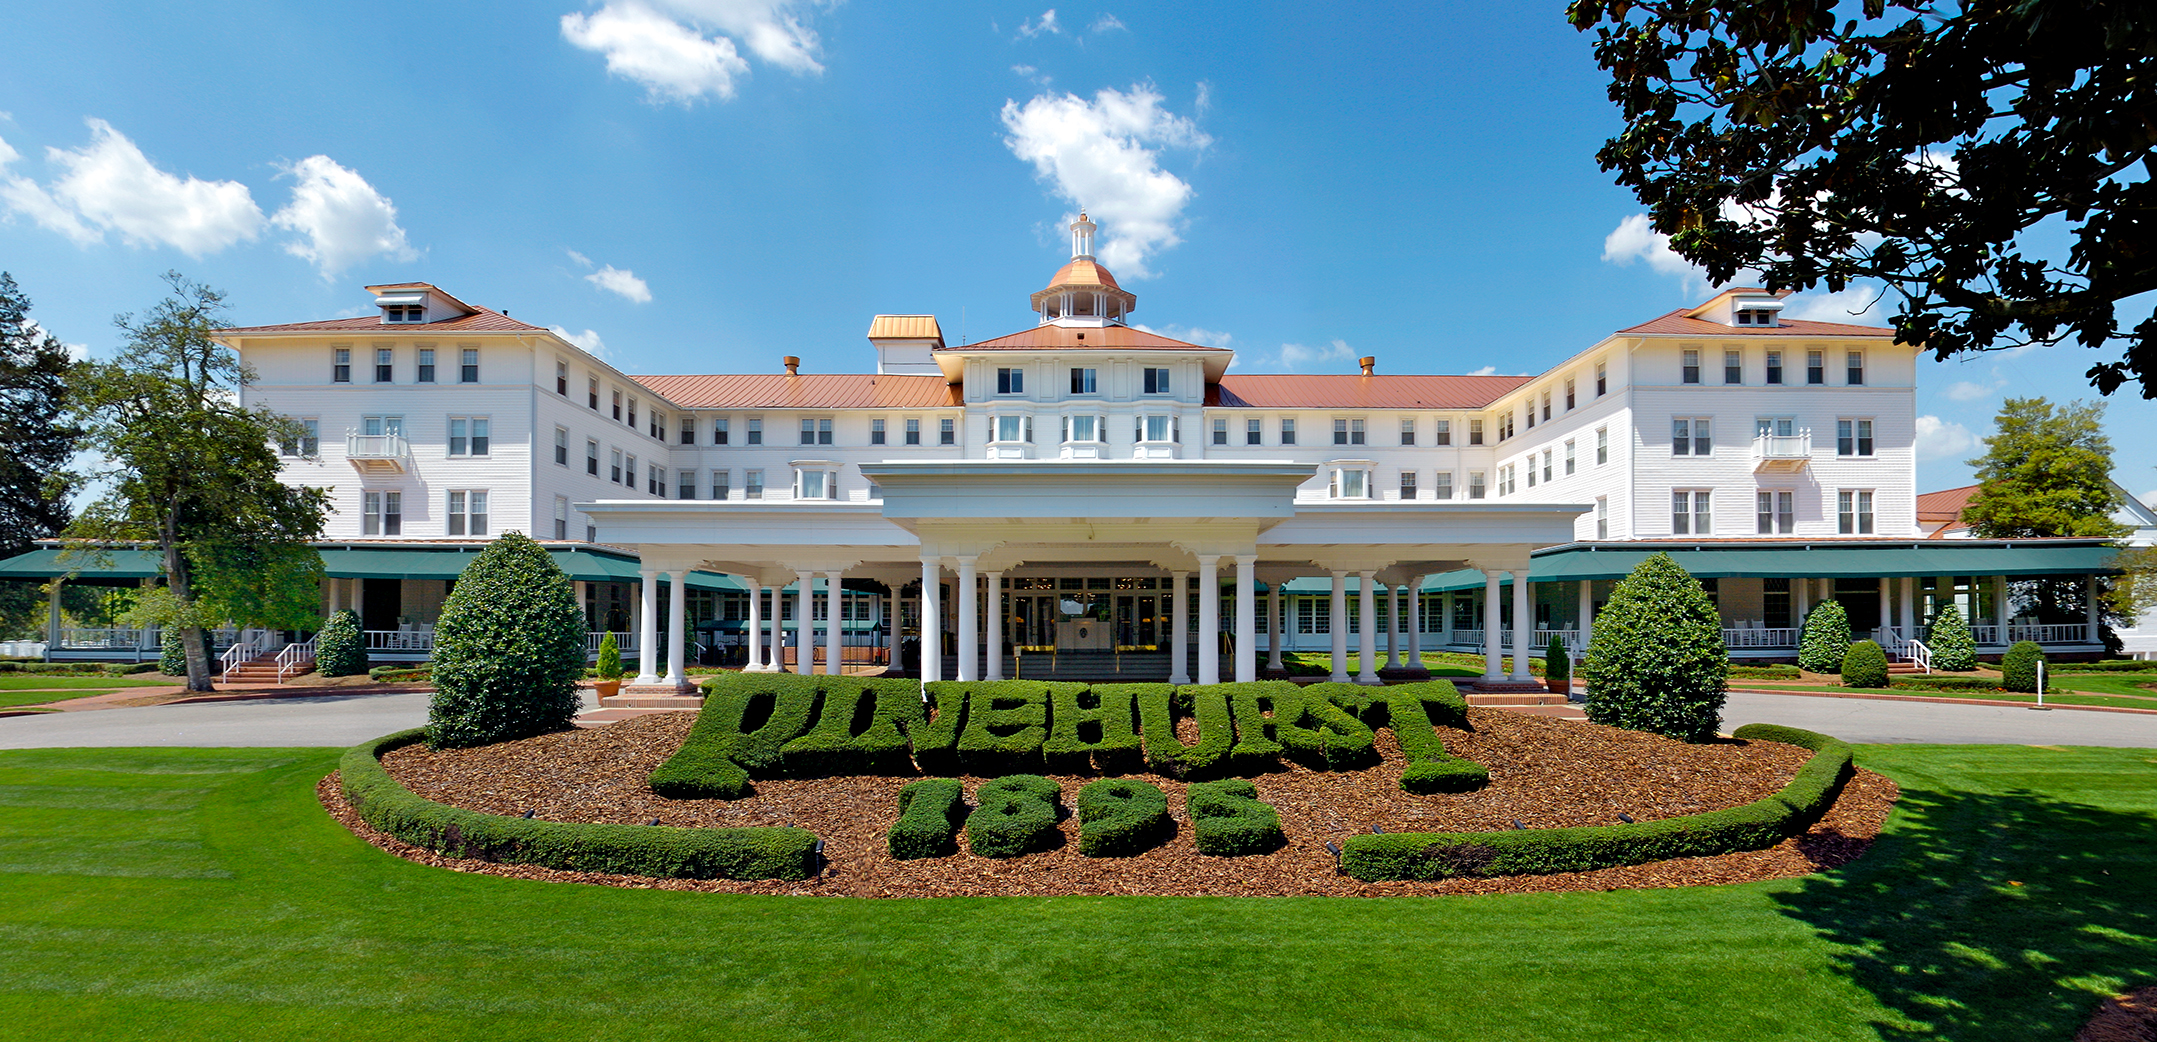 Pinehurst resort.